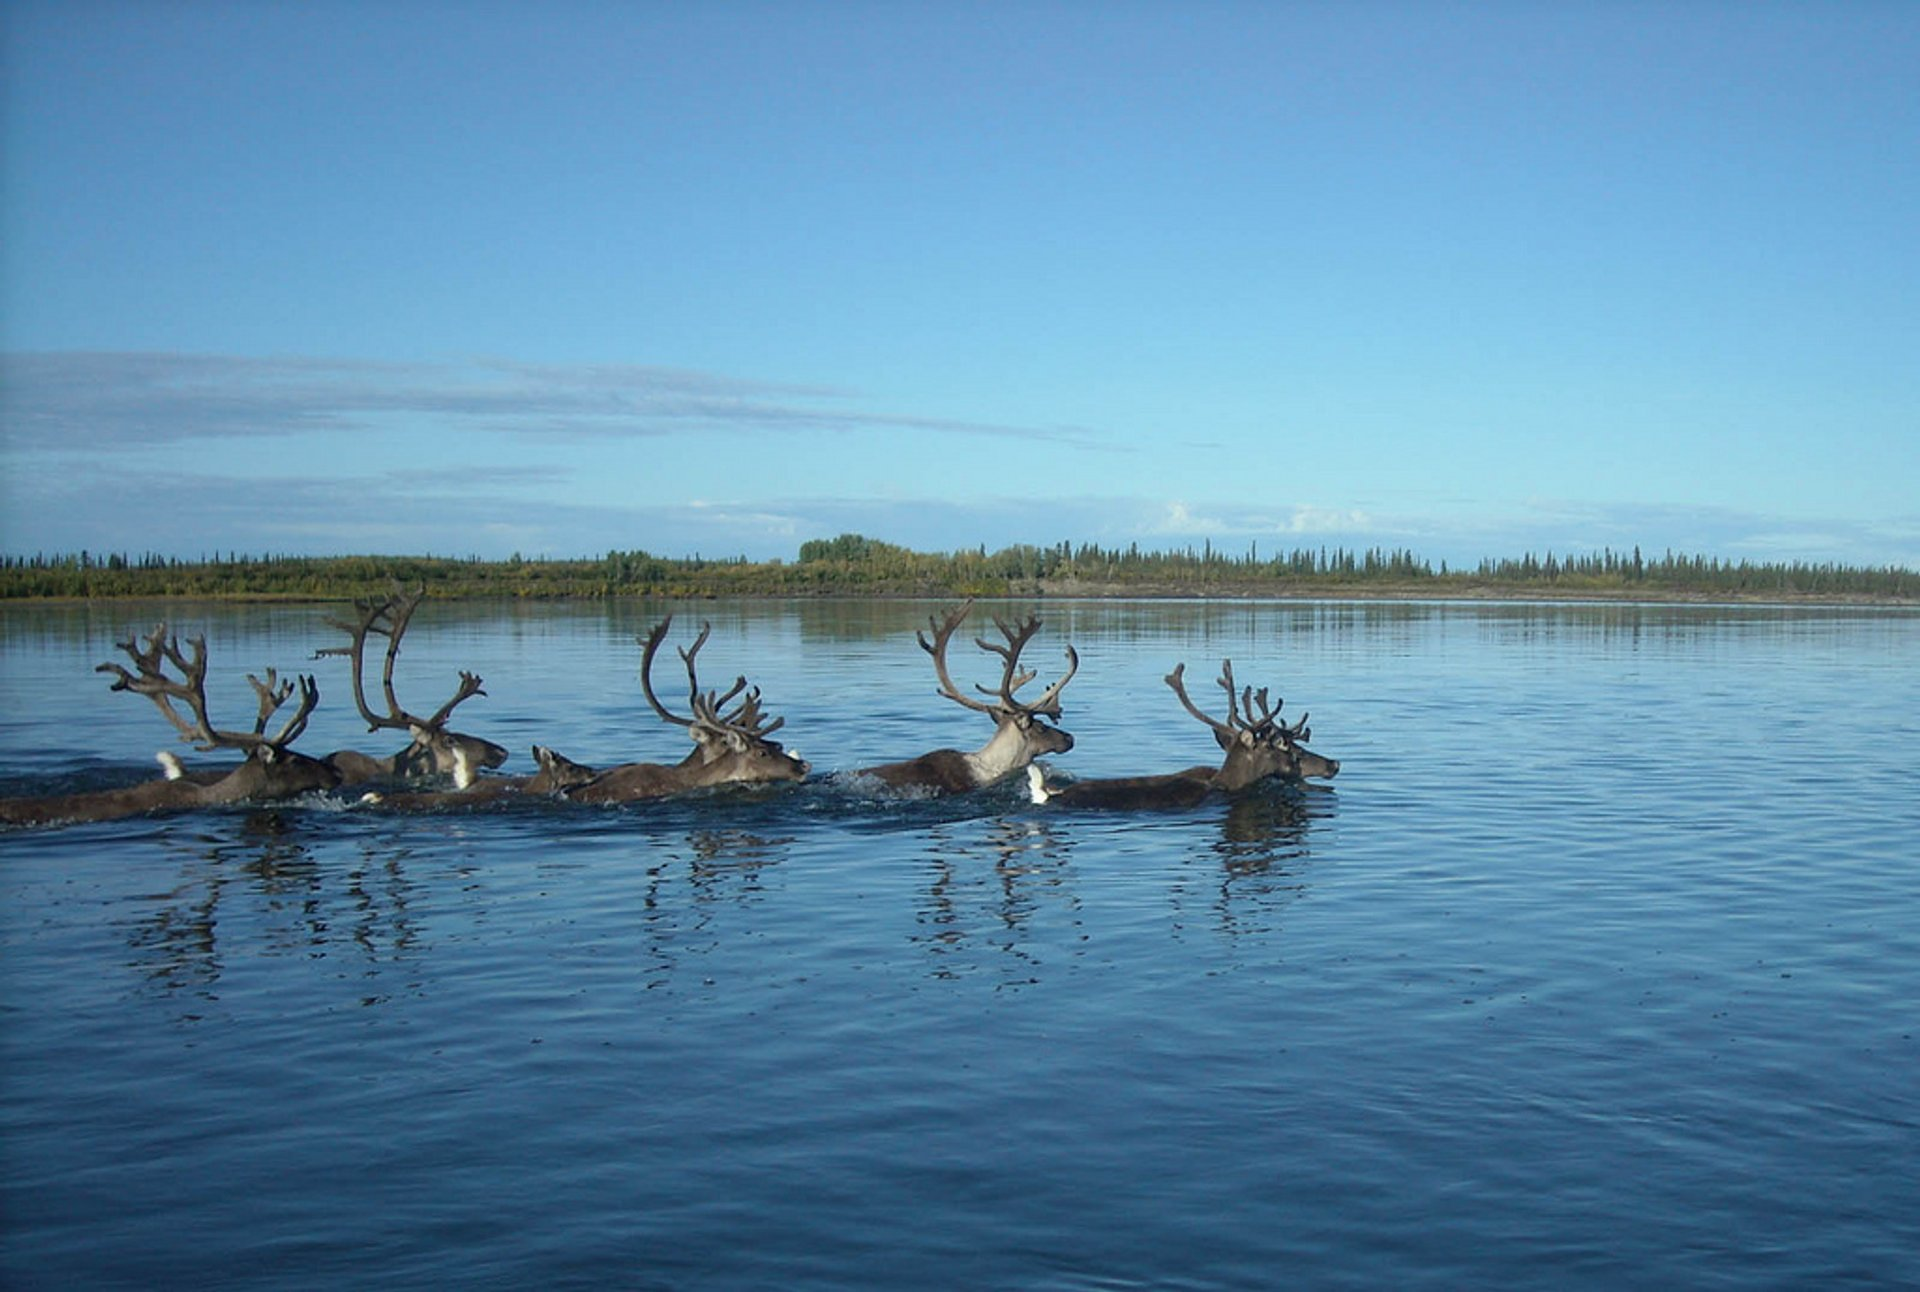 Crossing the Kobuk river in Kobuk Valley National Park 2020